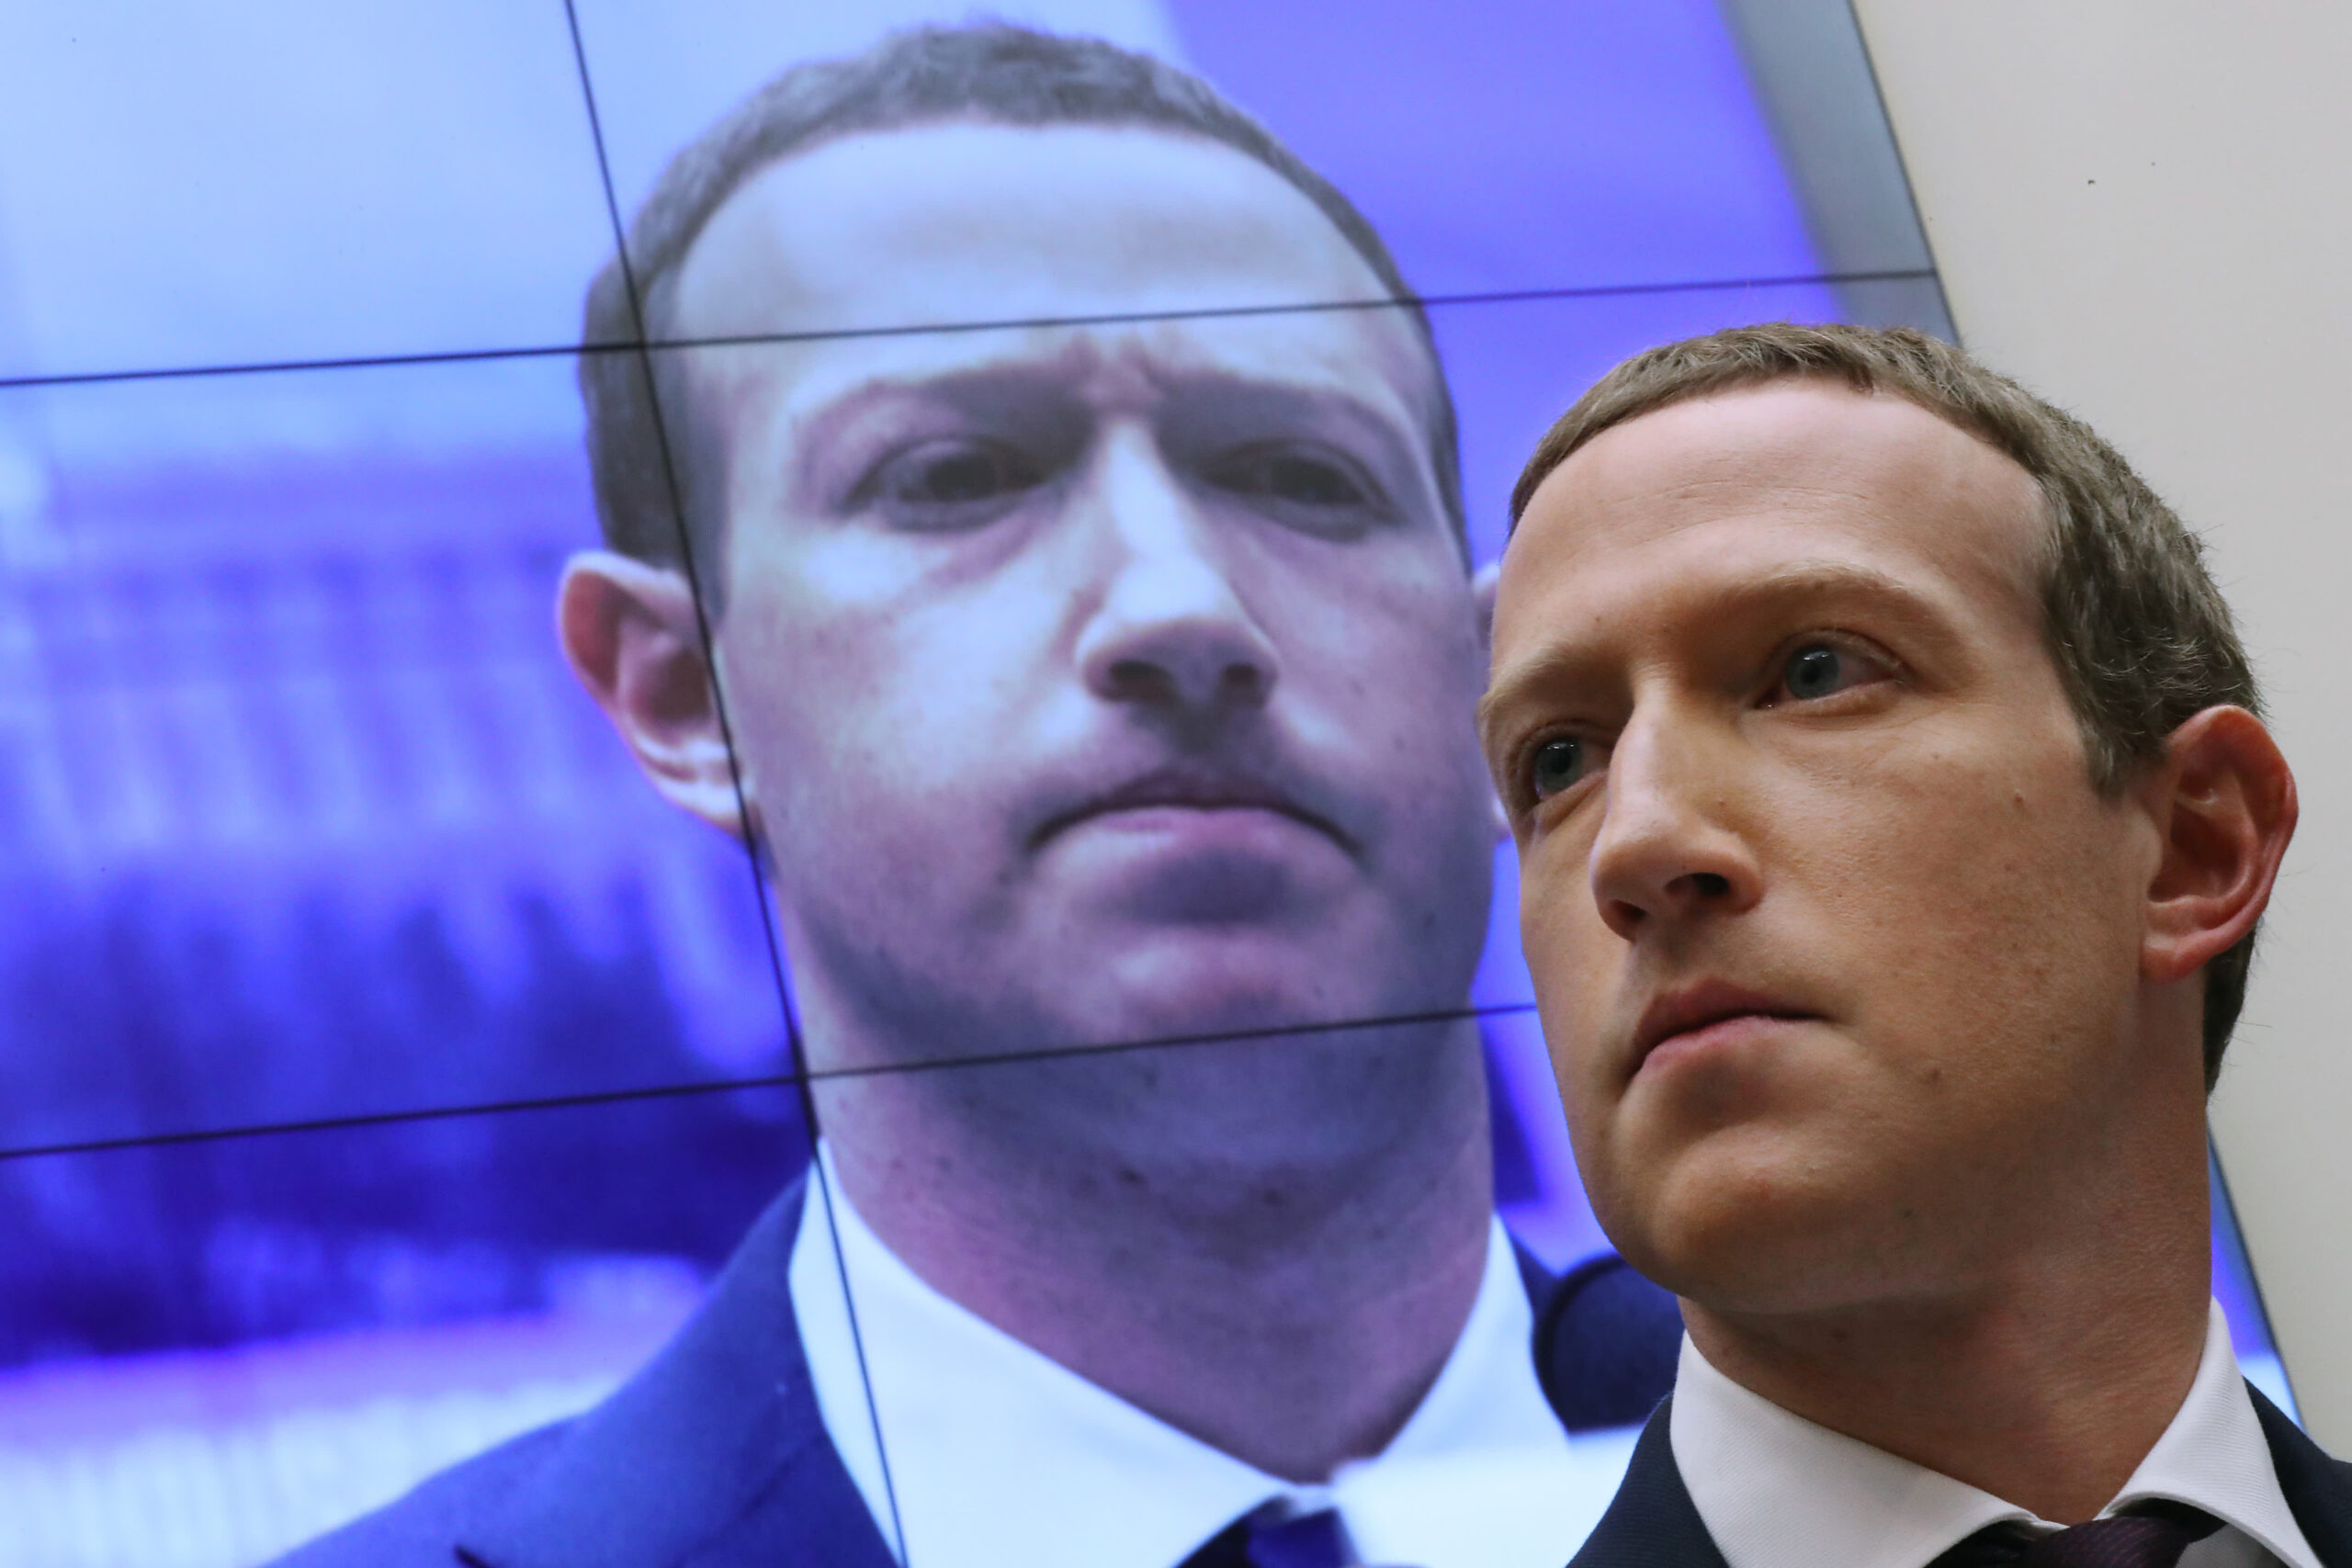 Facebook whistleblower releases documents to multiple news outlets showing company knows the harm it causes – Asia Newsday